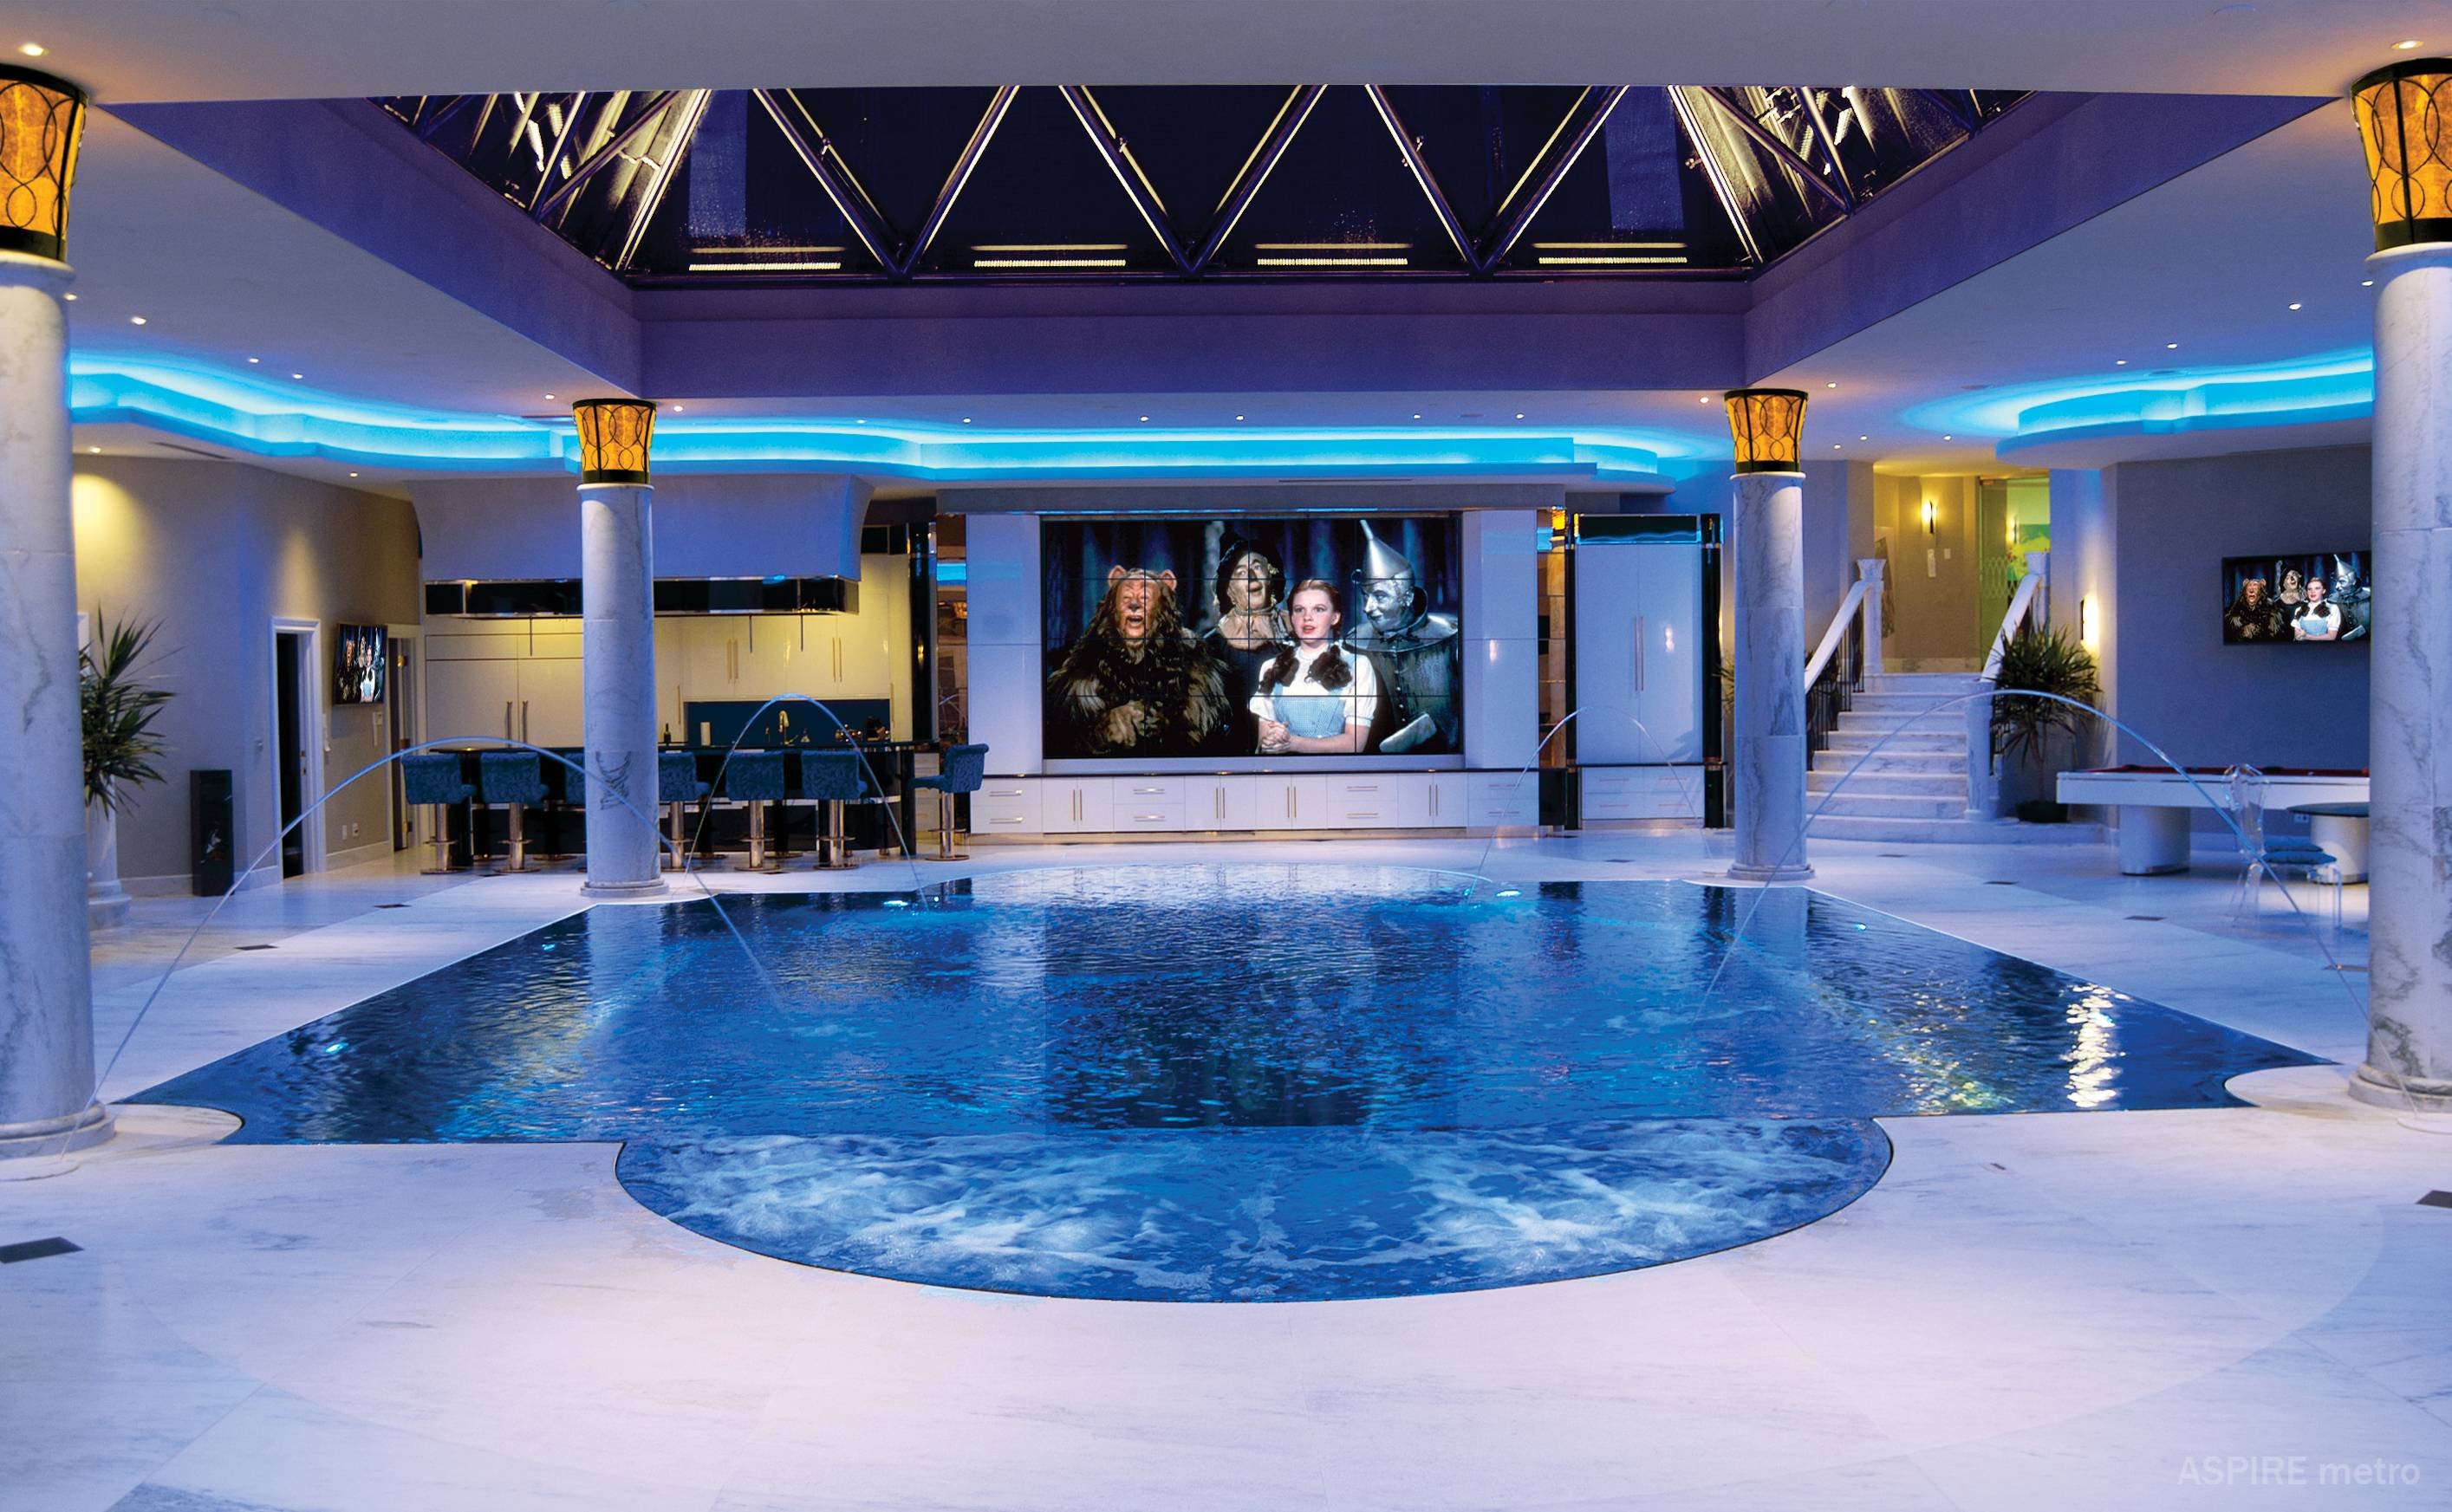 8 cozy and cool indoor pool rooms luxury pools outdoor living8 cozy and cool indoor pool rooms